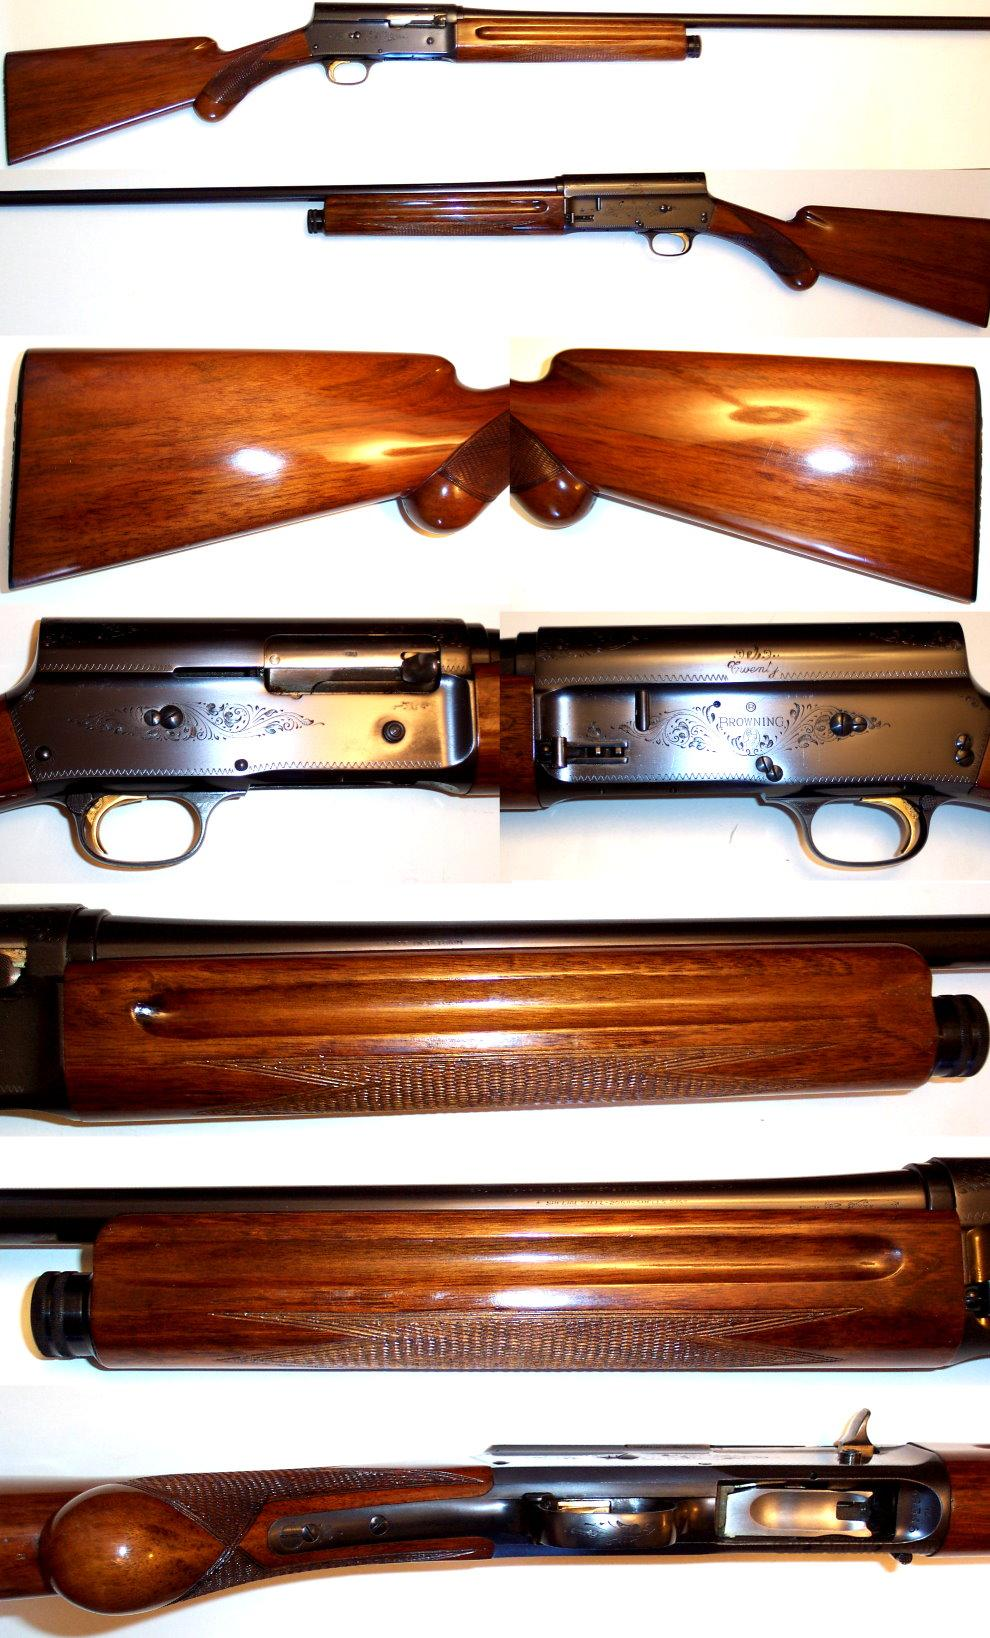 '61 Belgium Browning A5 20 gauge in excellent cond  Guns > Shotguns > Browning Shotguns > Autoloaders > Hunting